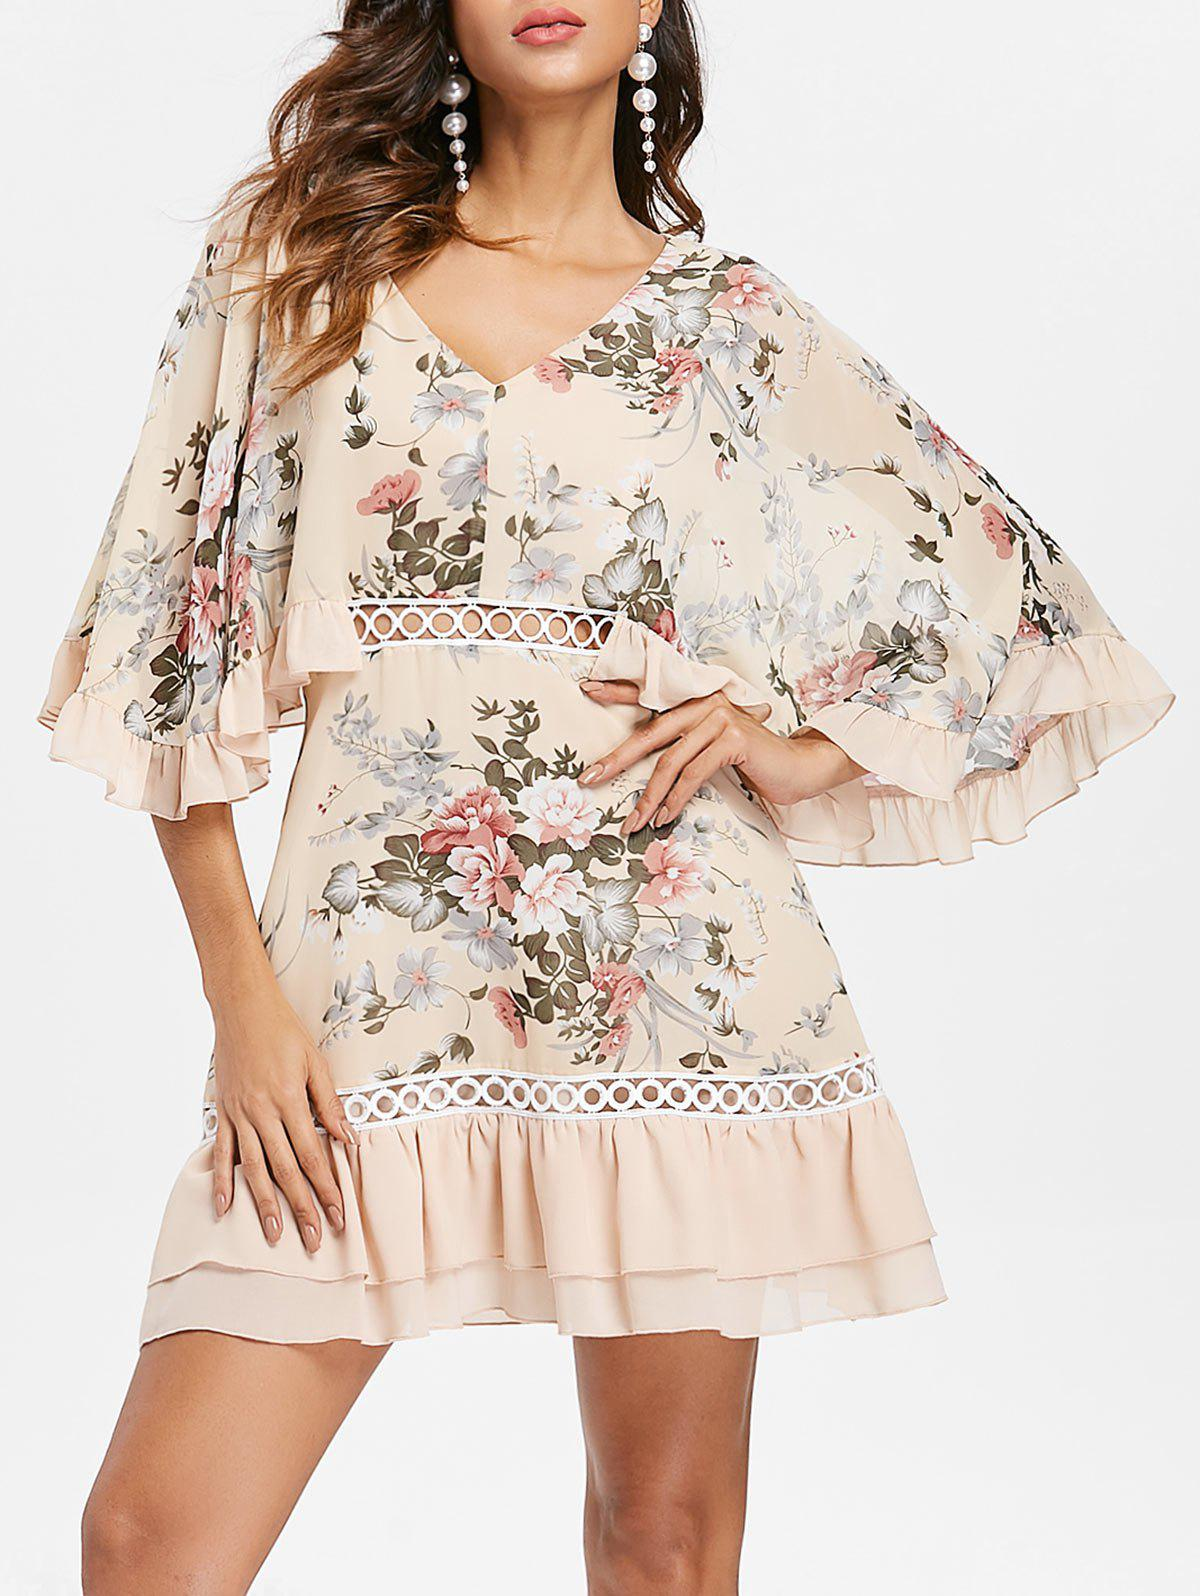 Unique Butterfly Sleeve Mini Floral Chiffon Dress